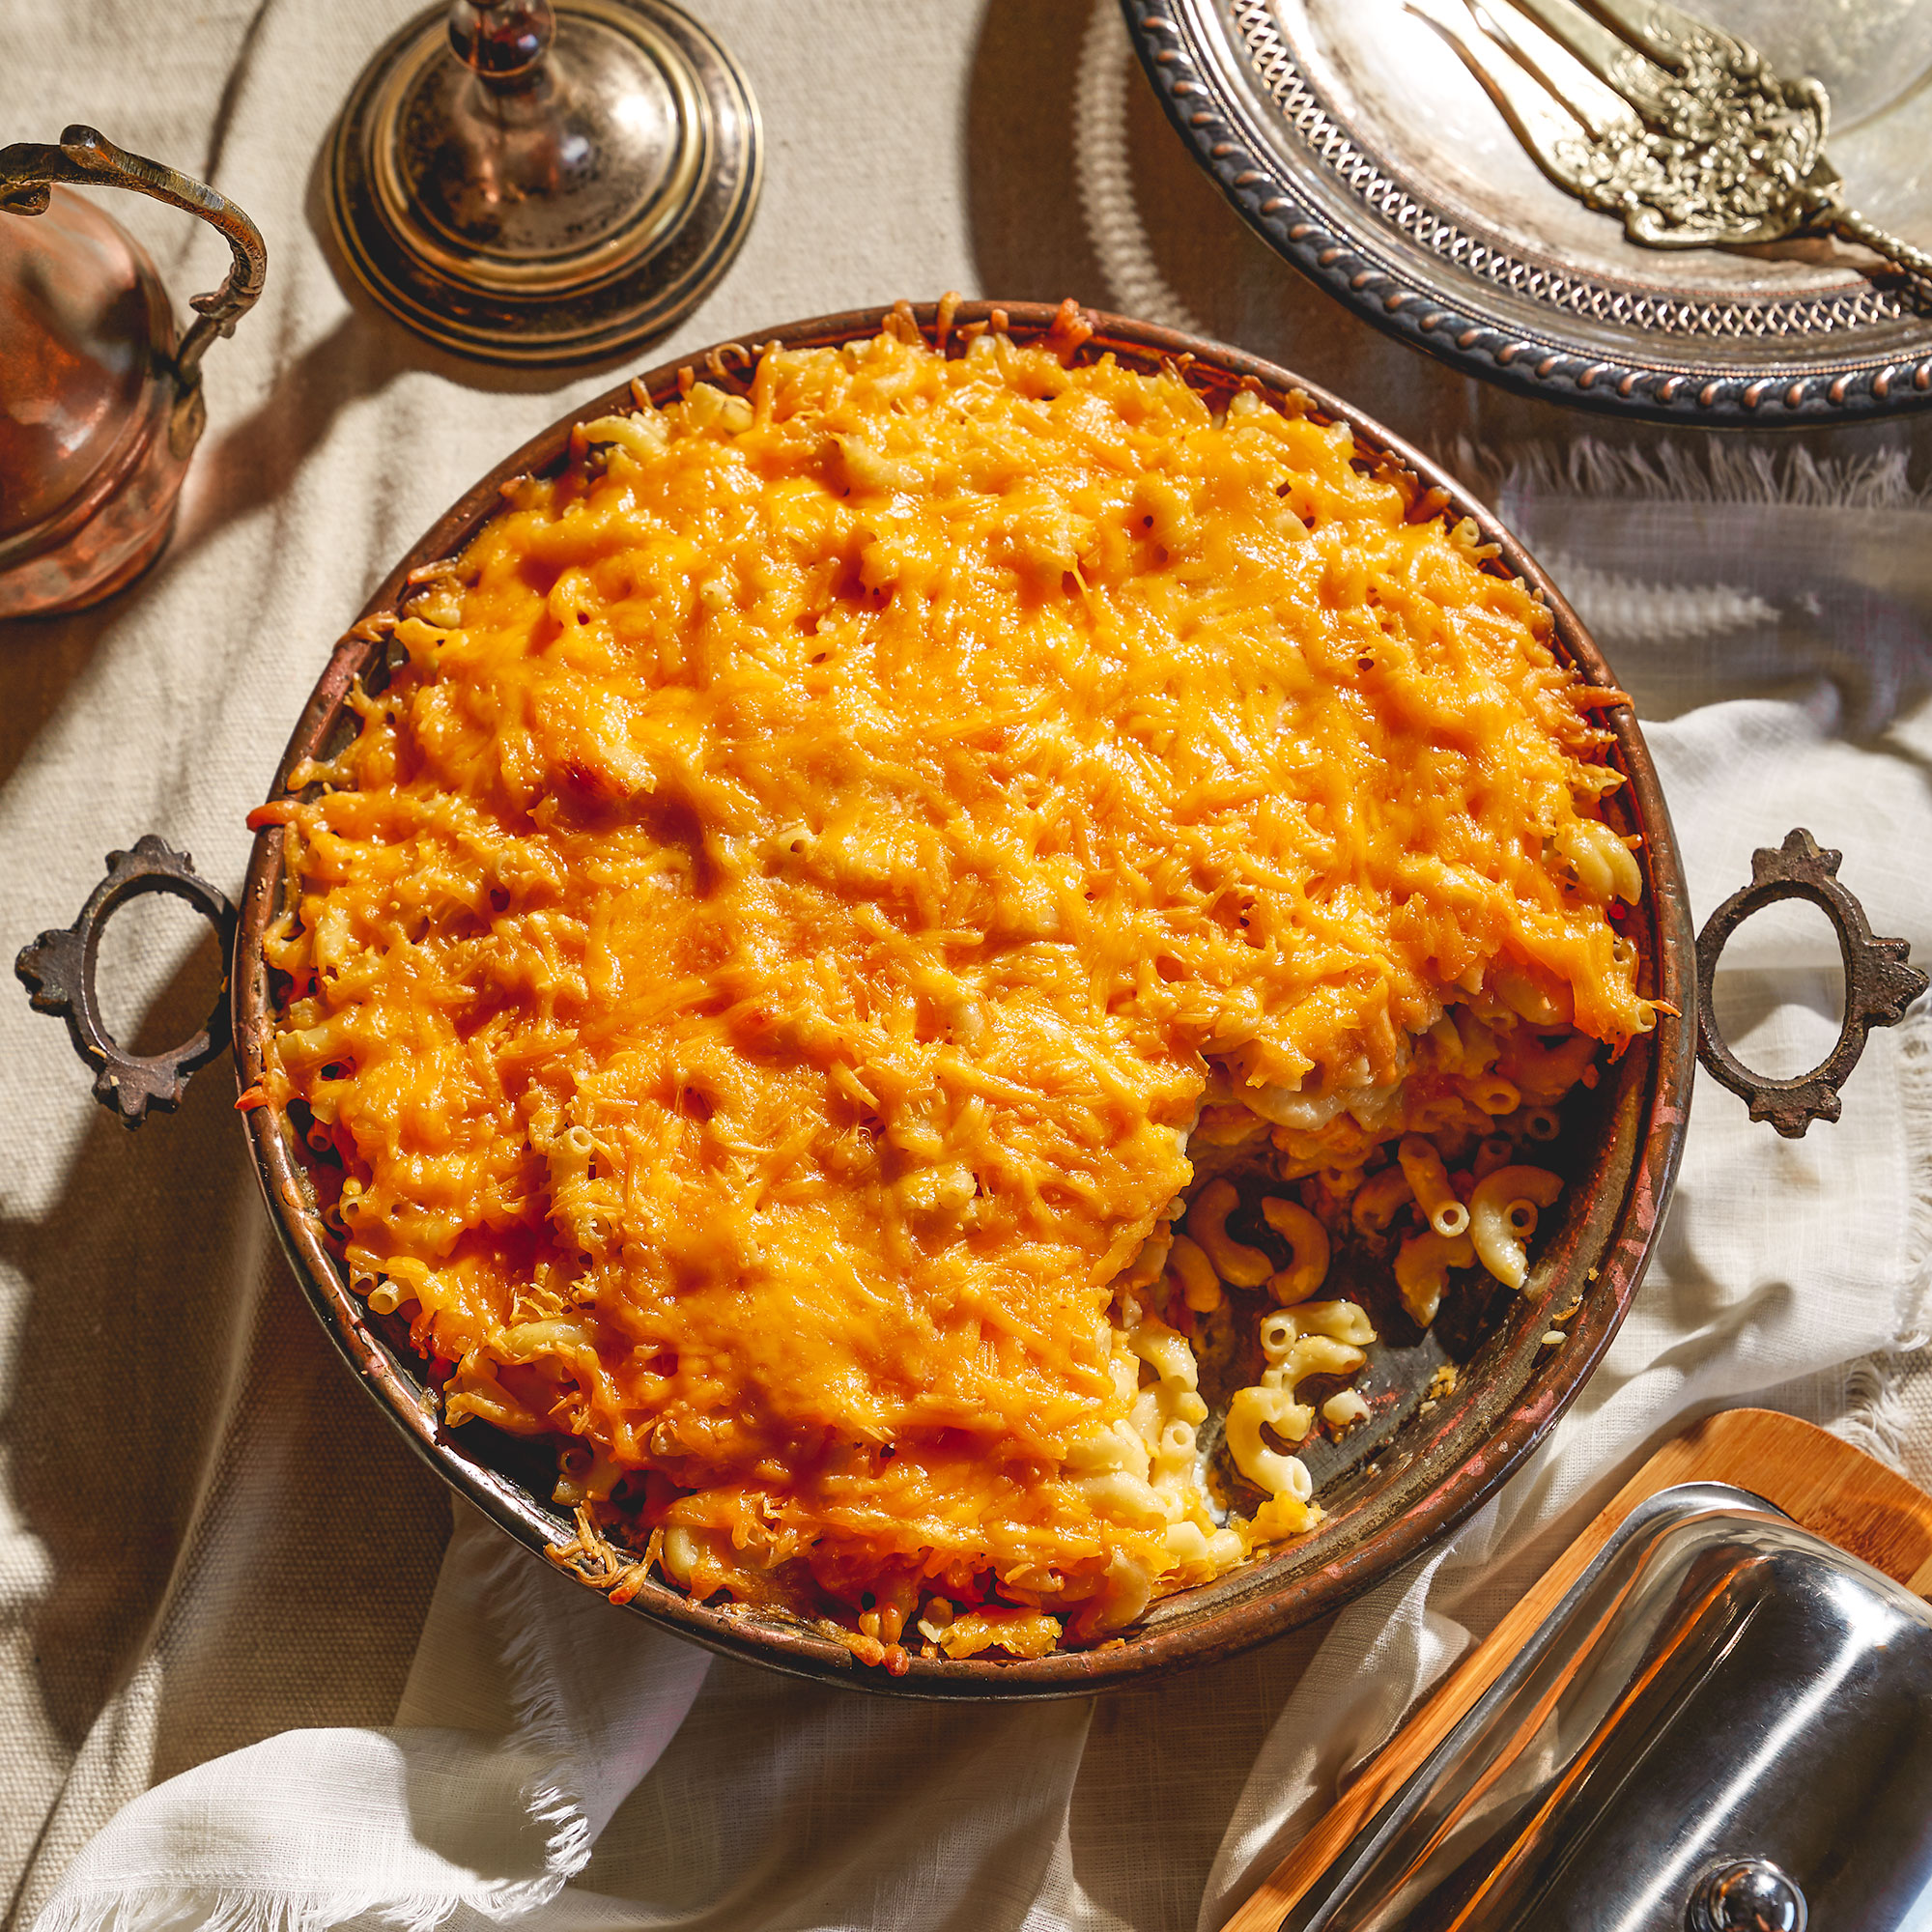 A dish of baked macaroni and cheese